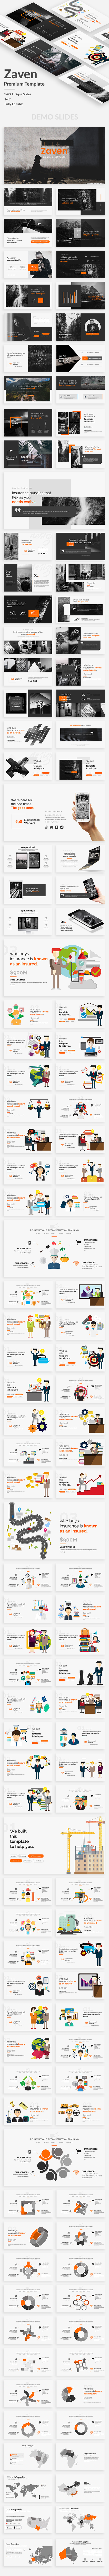 Zaven Creative Powerpoint Template - Creative PowerPoint Templates